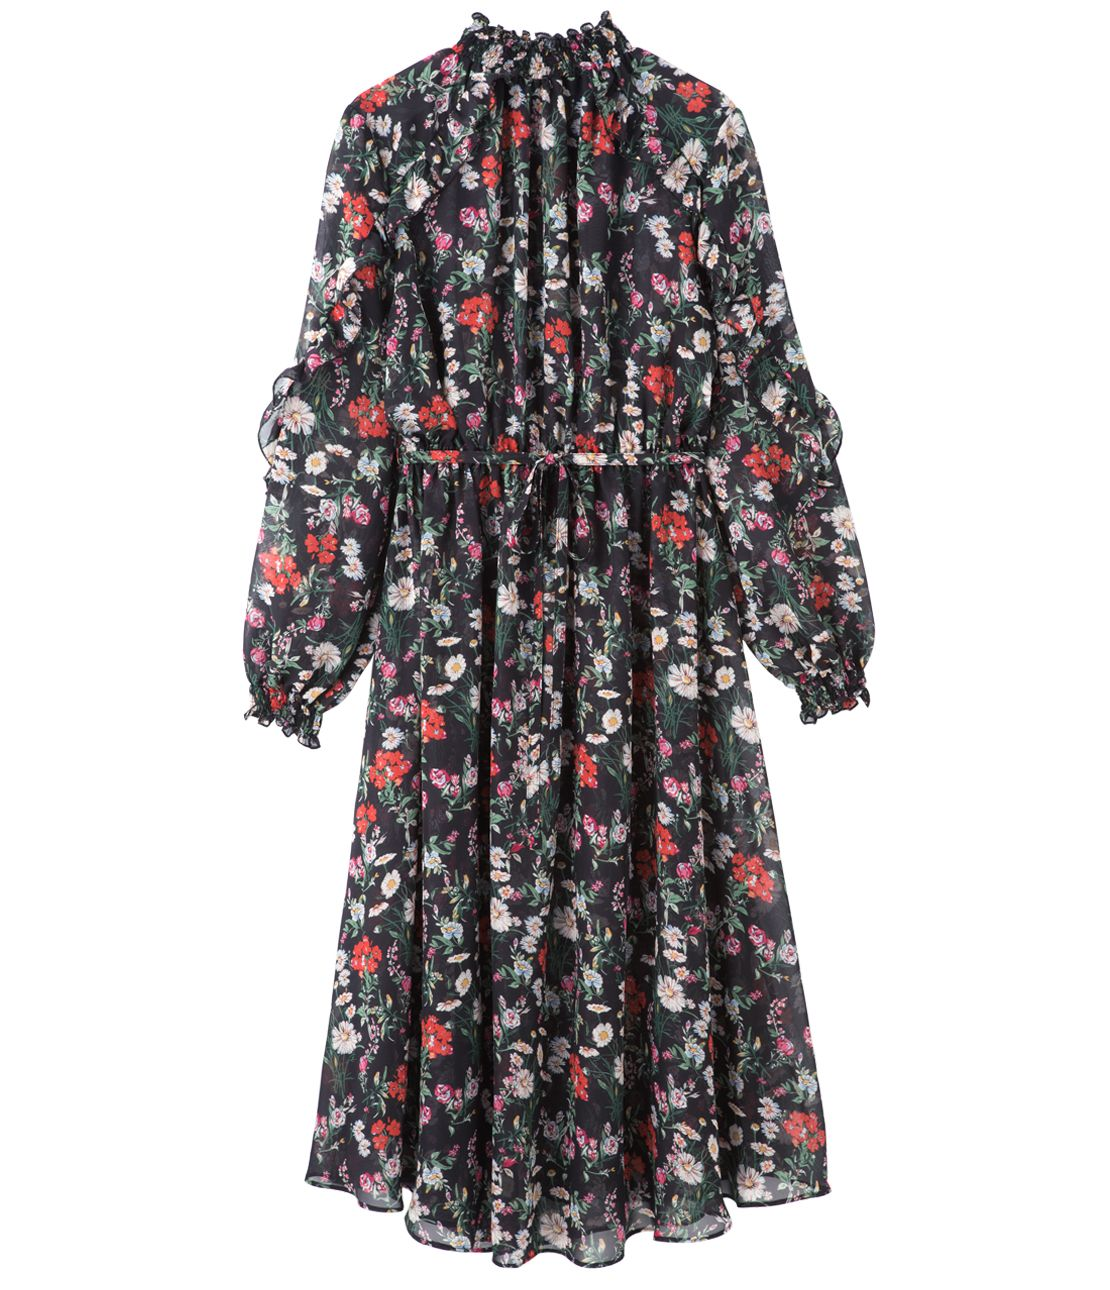 Ruffle sleeve print chiffon dress set